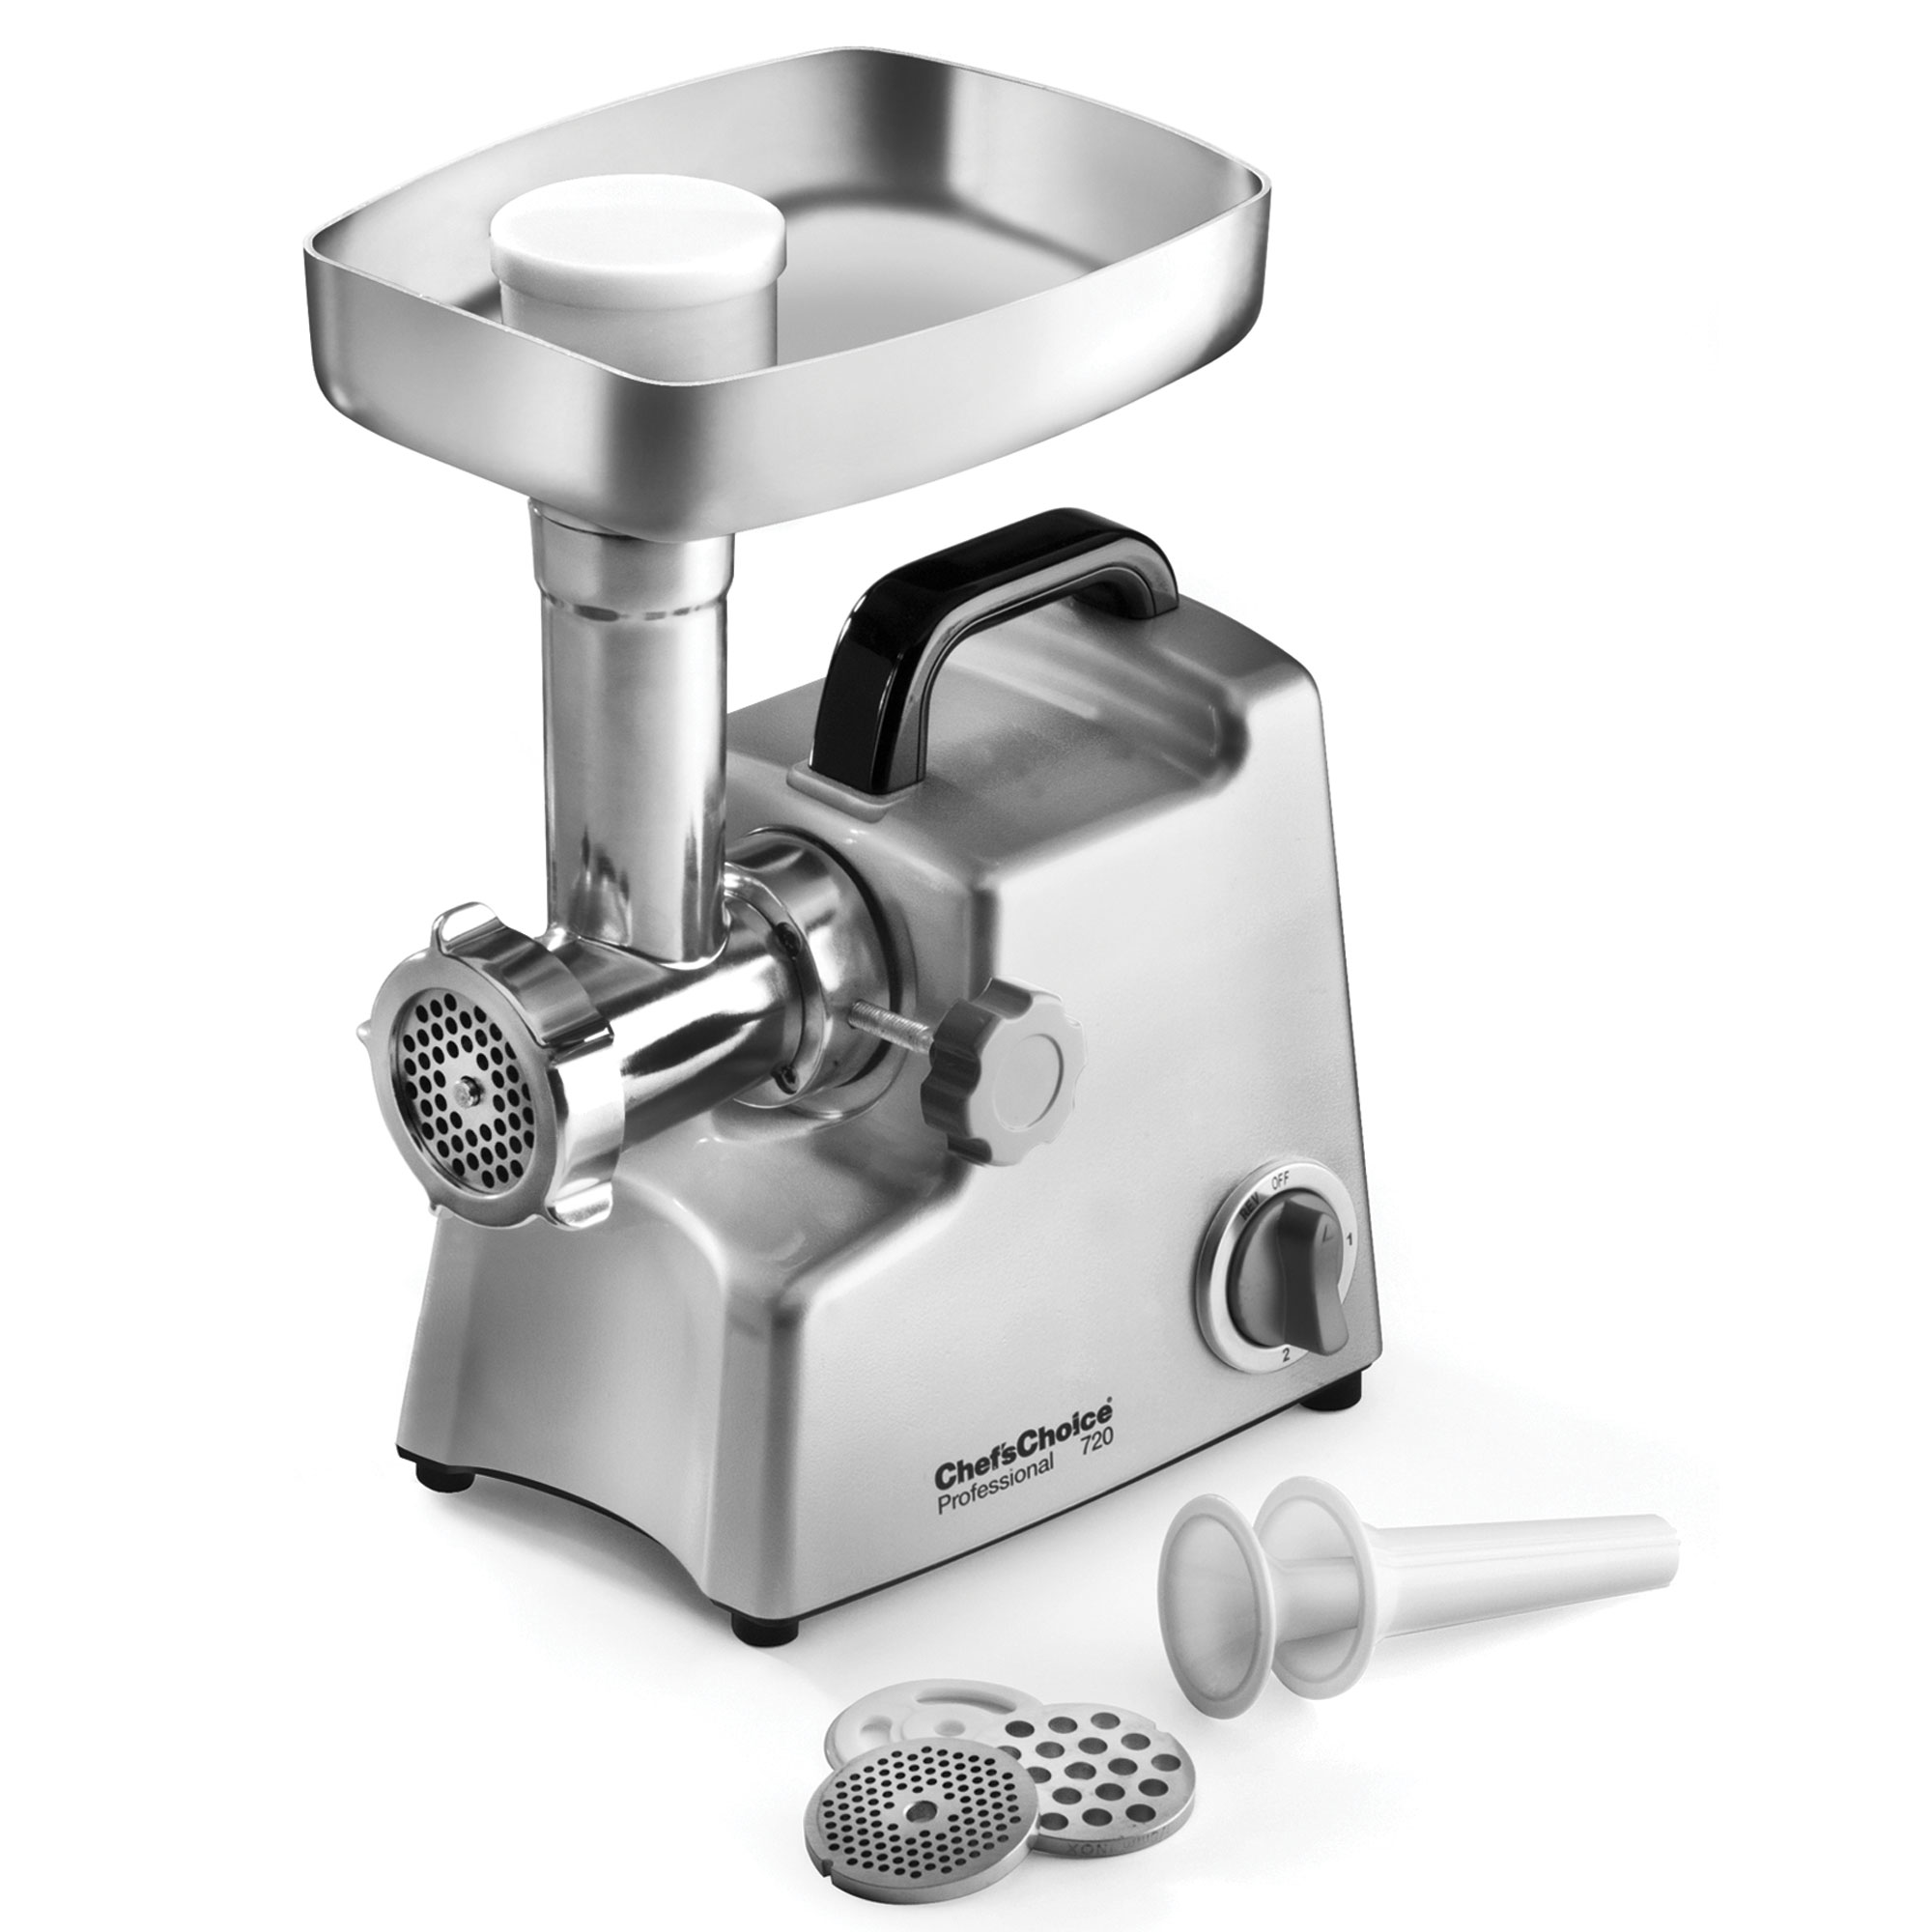 Chef S Choice Model 720 Professional Electric Meat Grinder